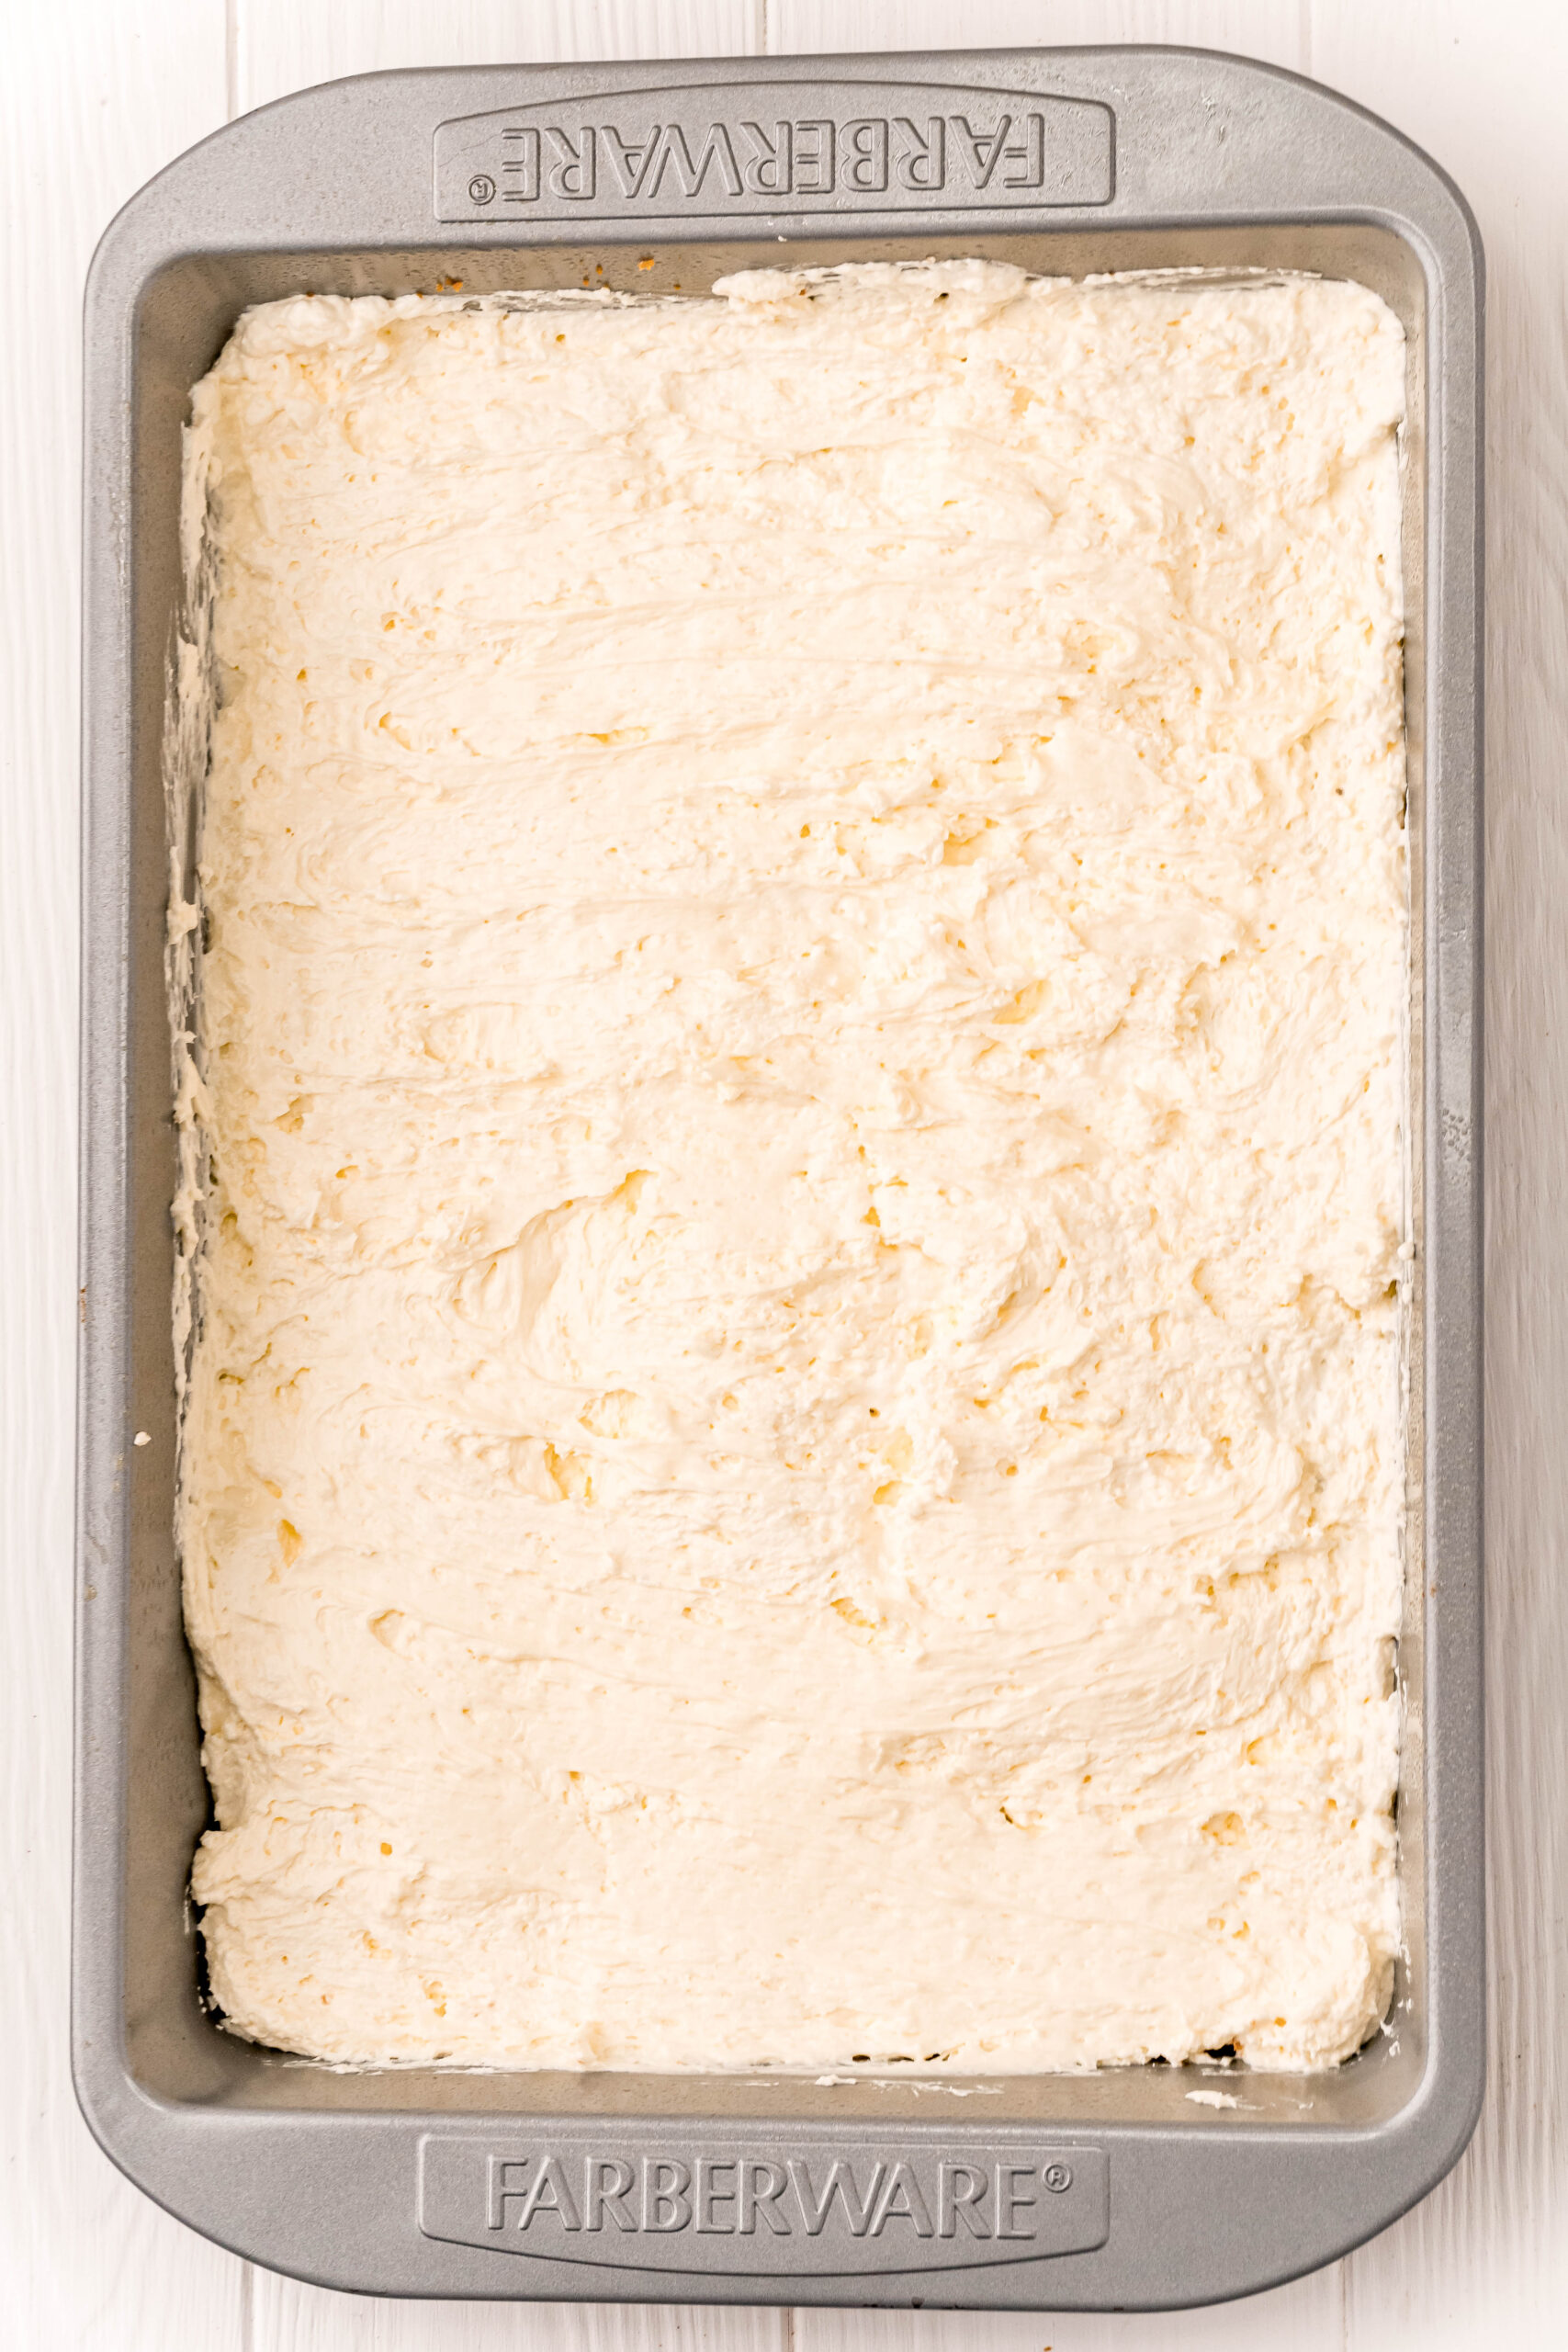 baking pan with cream cheese layer